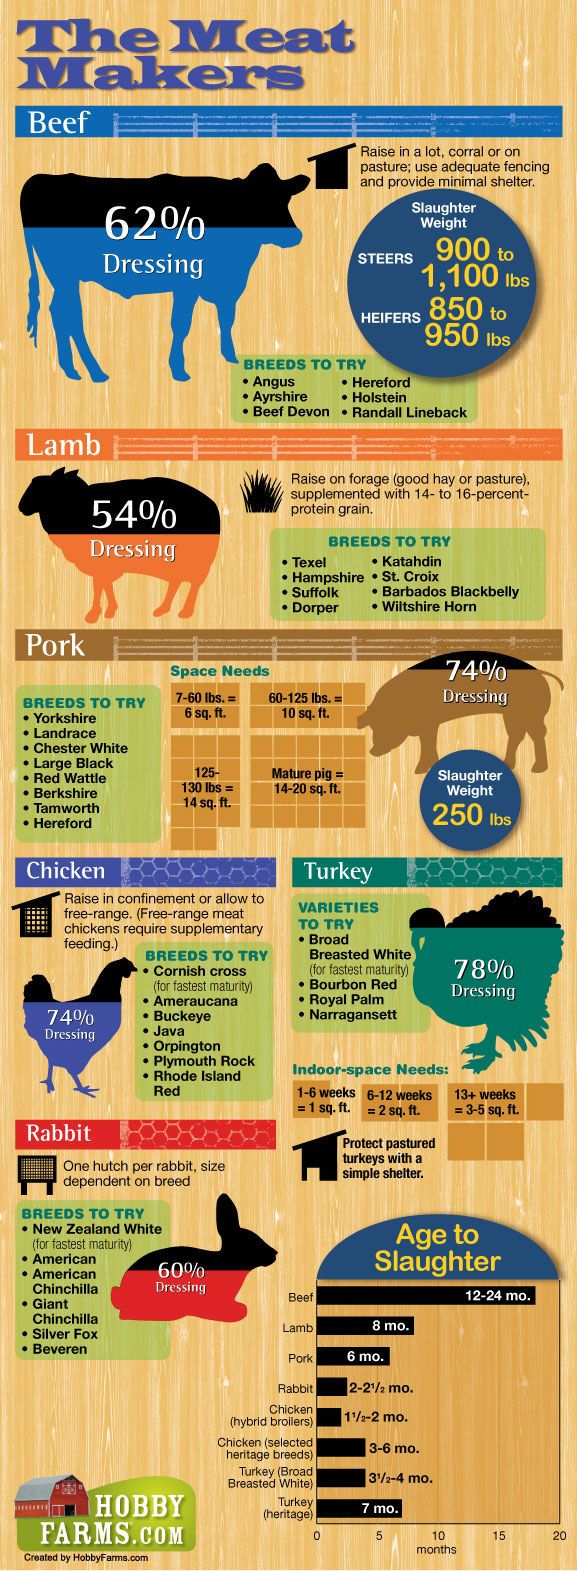 If you're planning on raising livestock (whether backyard suburban chickens or free range cattle) get the info you need to choose the best meat to raise re: ratio for food, shelter, length of time to table, etc. The infographic compares different livestock species.